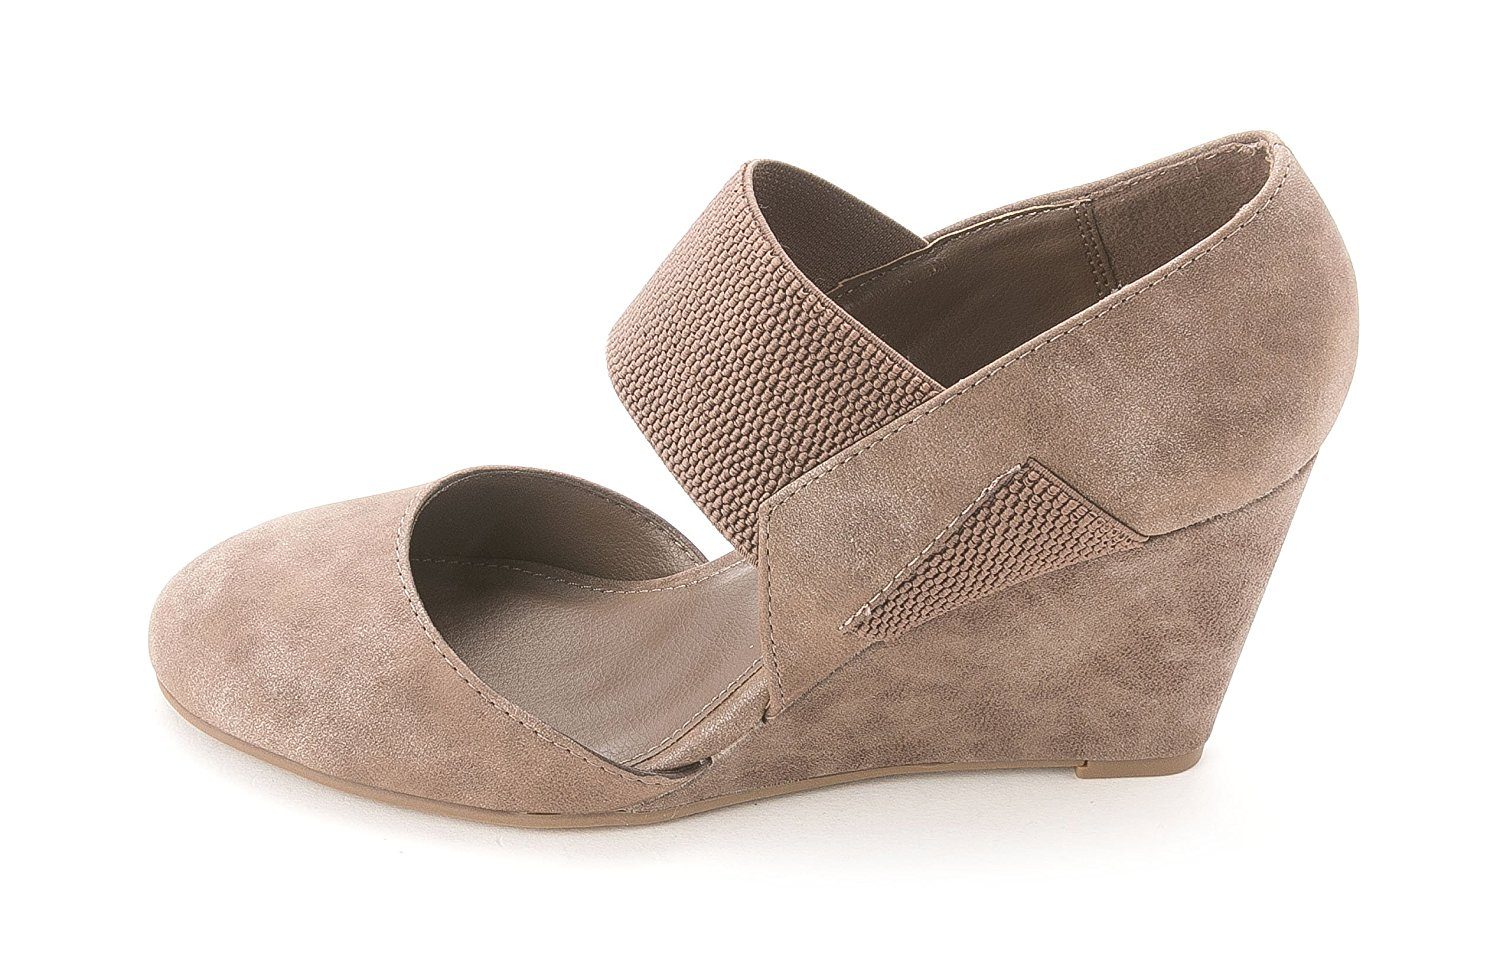 Unlisted Womens Big Bold Closed Toe Ankle Strap Wedge Pumps Taupe Size 8.5 b